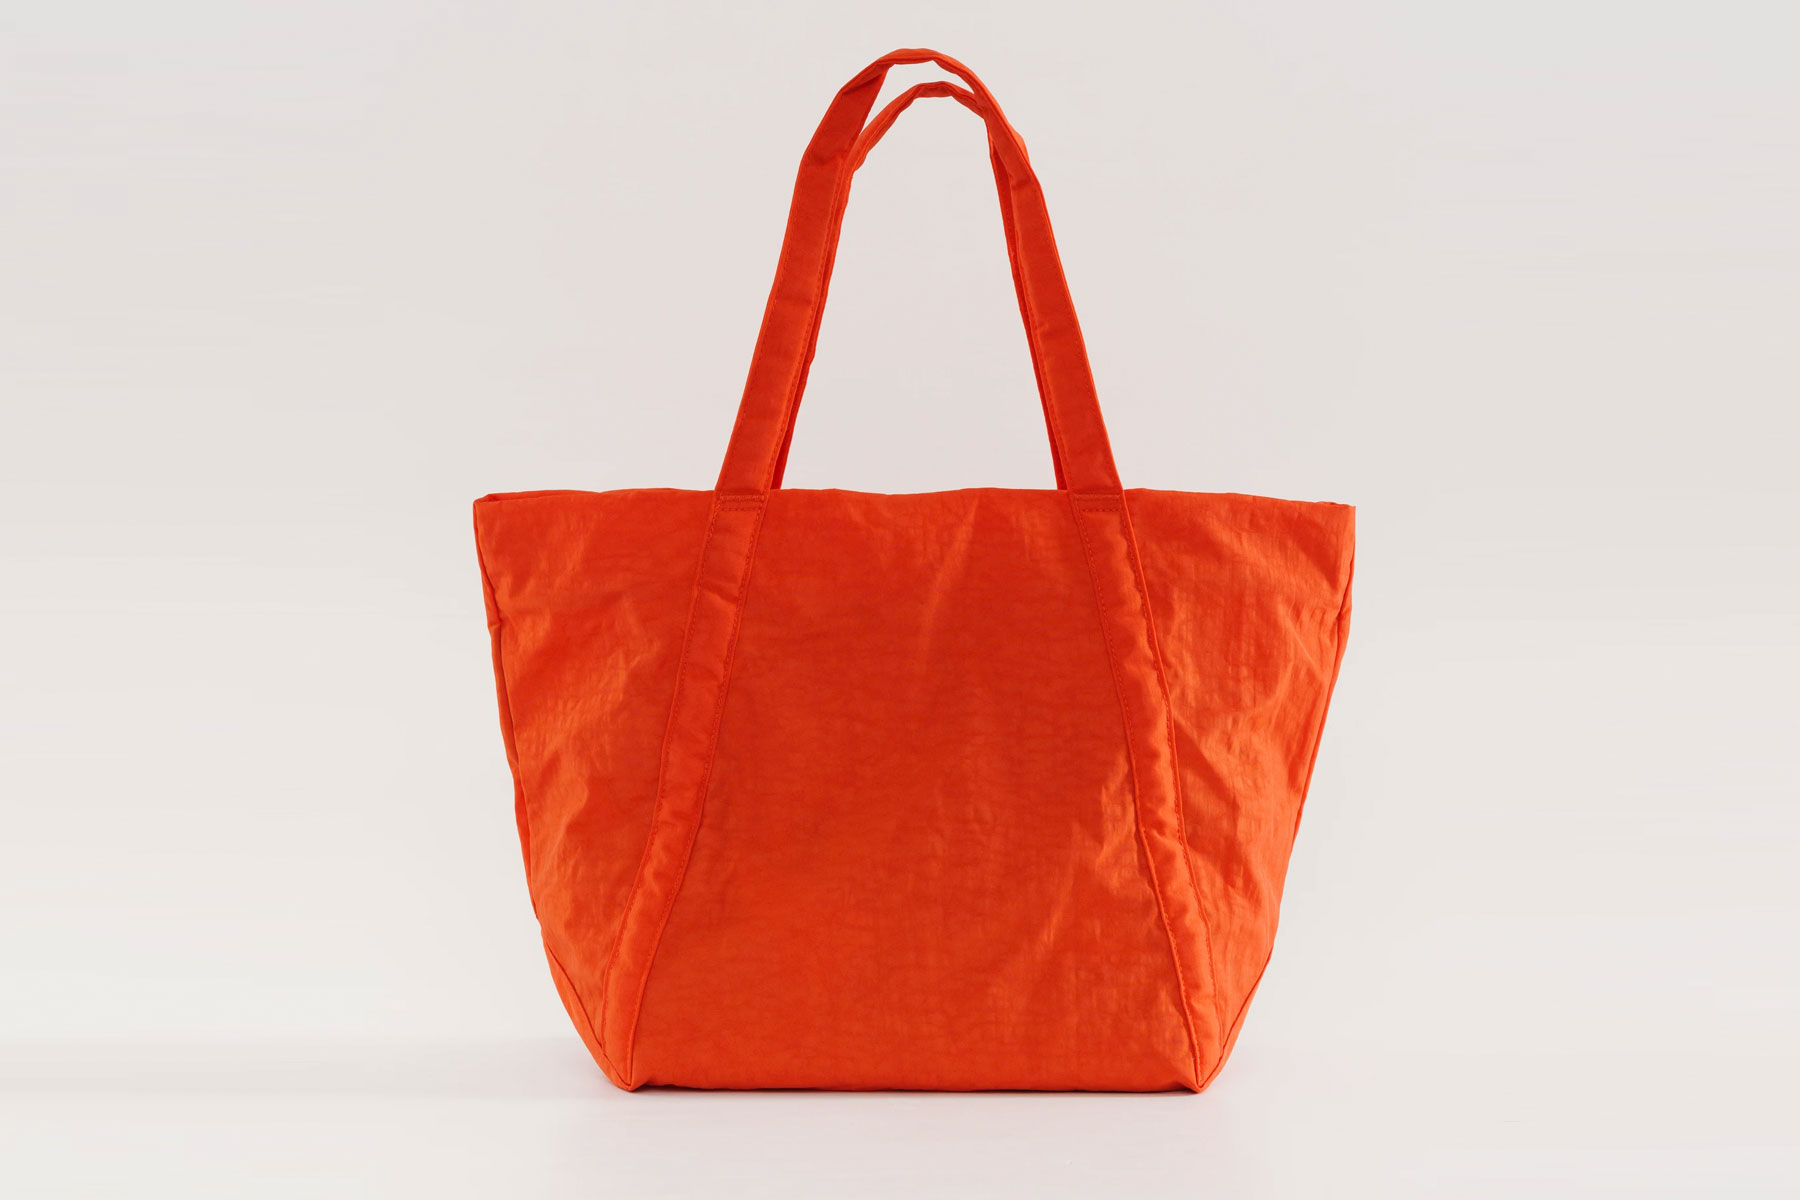 Orange fabric tote bag